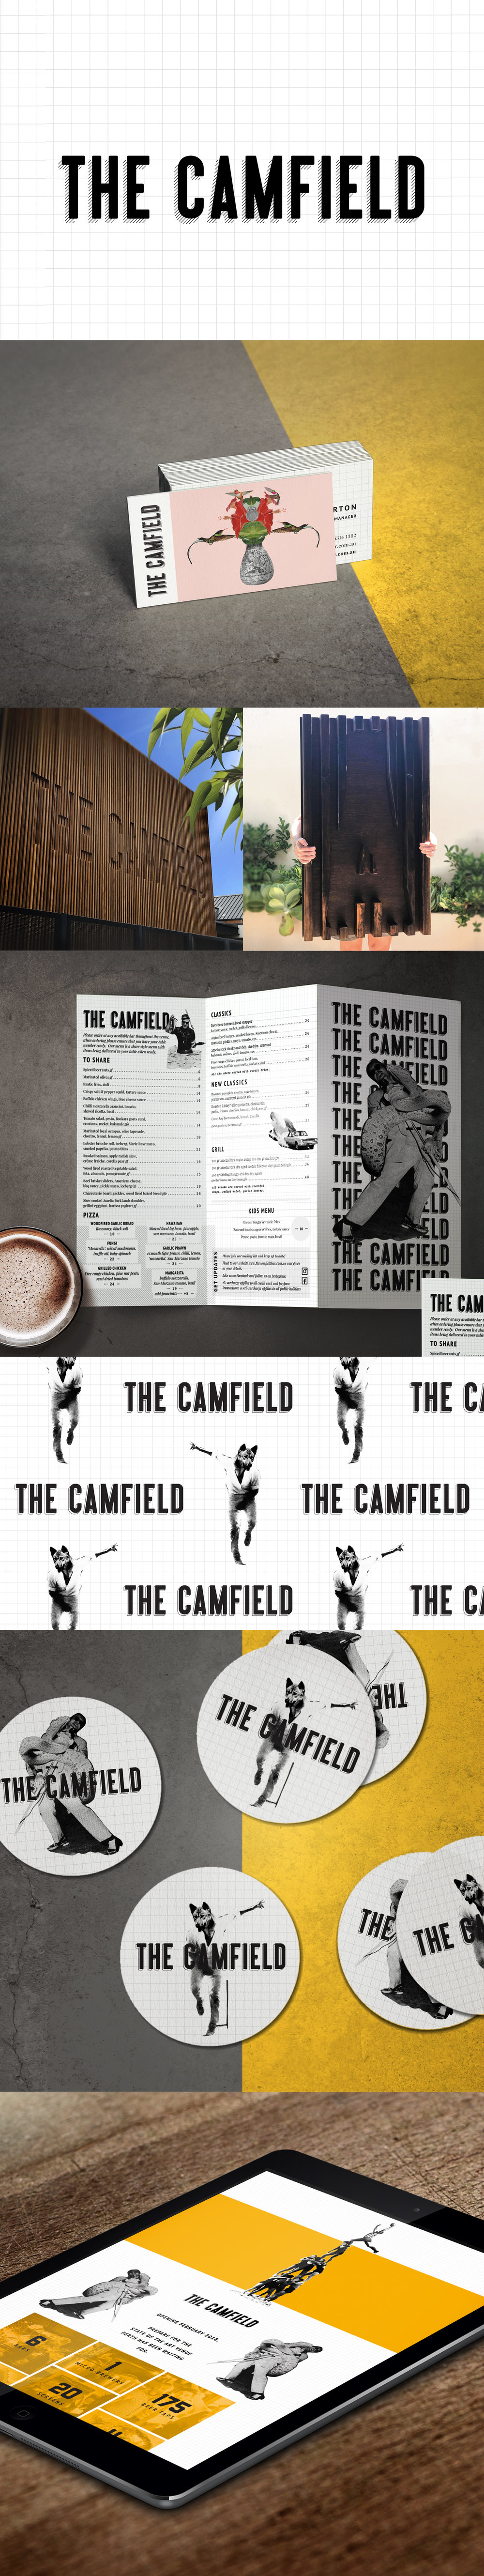 The Camfield